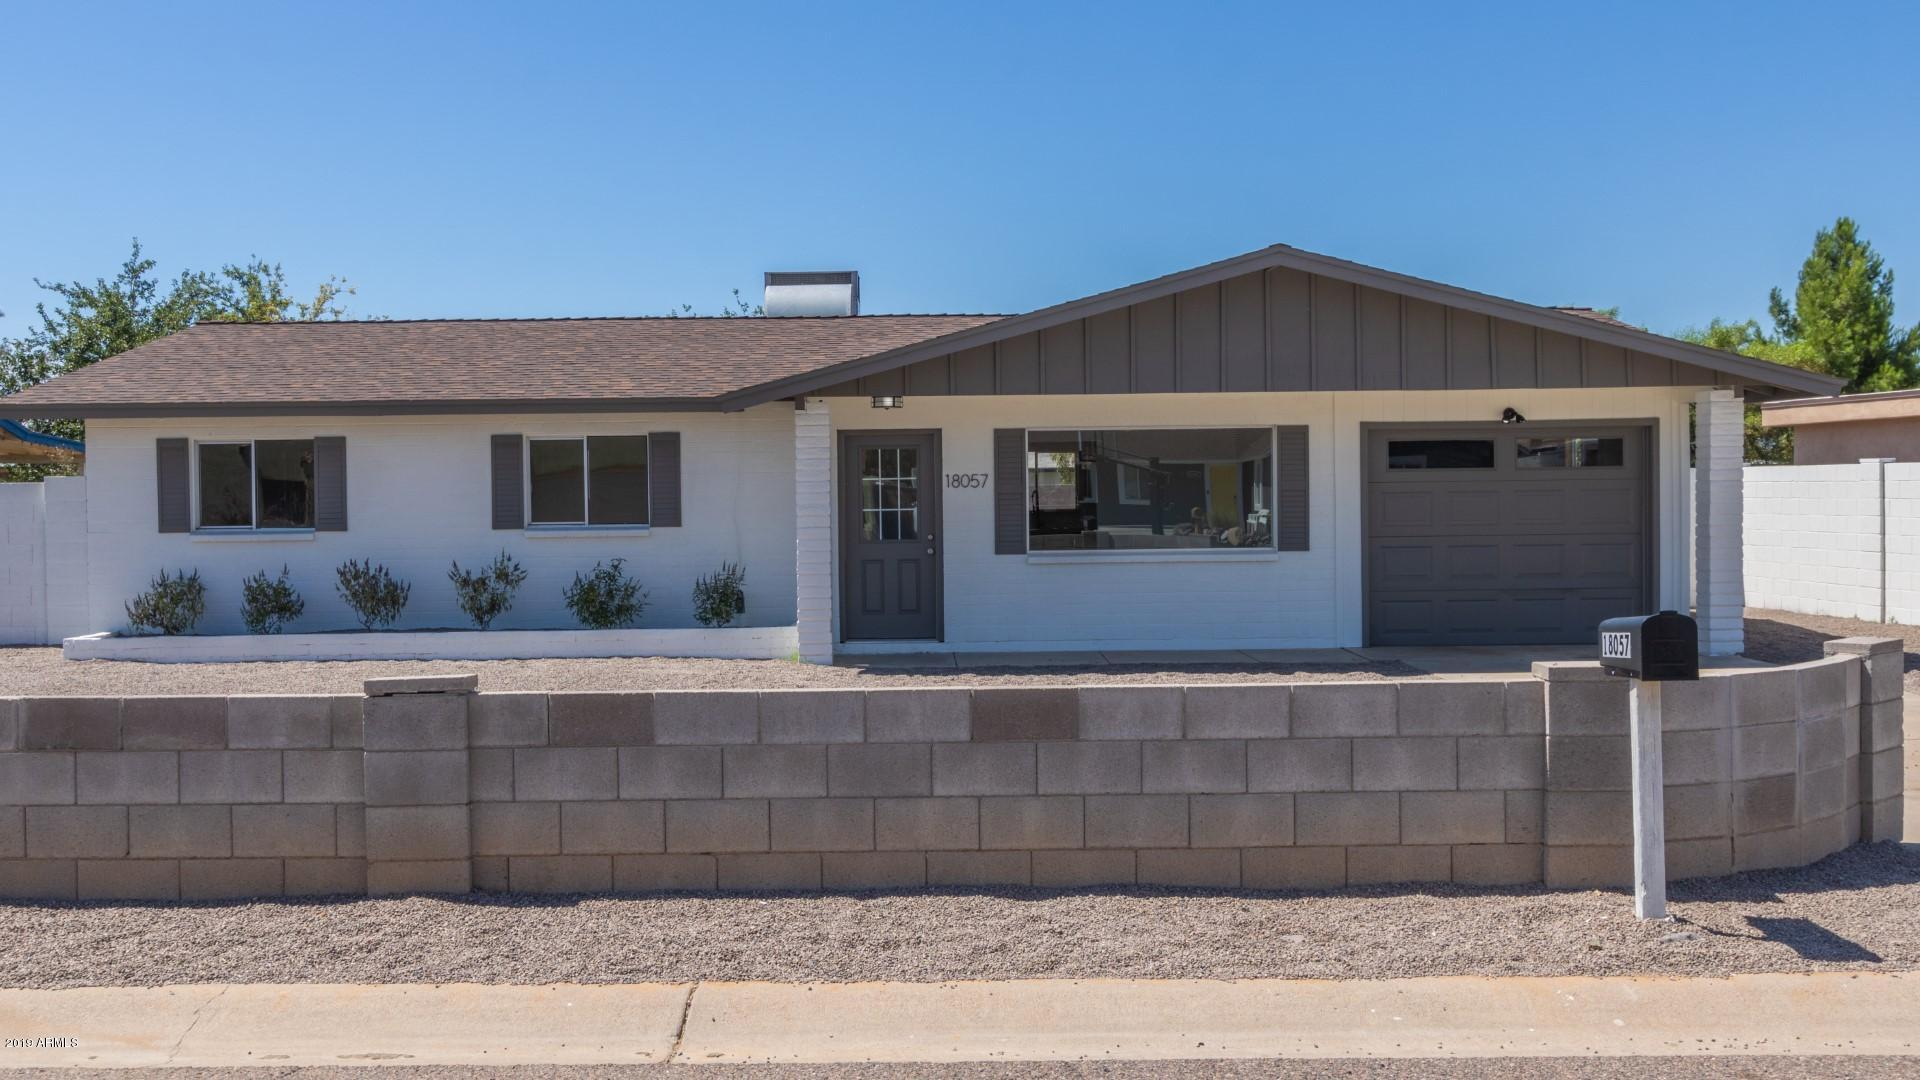 Photo for 18057 N Villa Rita Drive, Phoenix, AZ 85032 (MLS # 5938760)